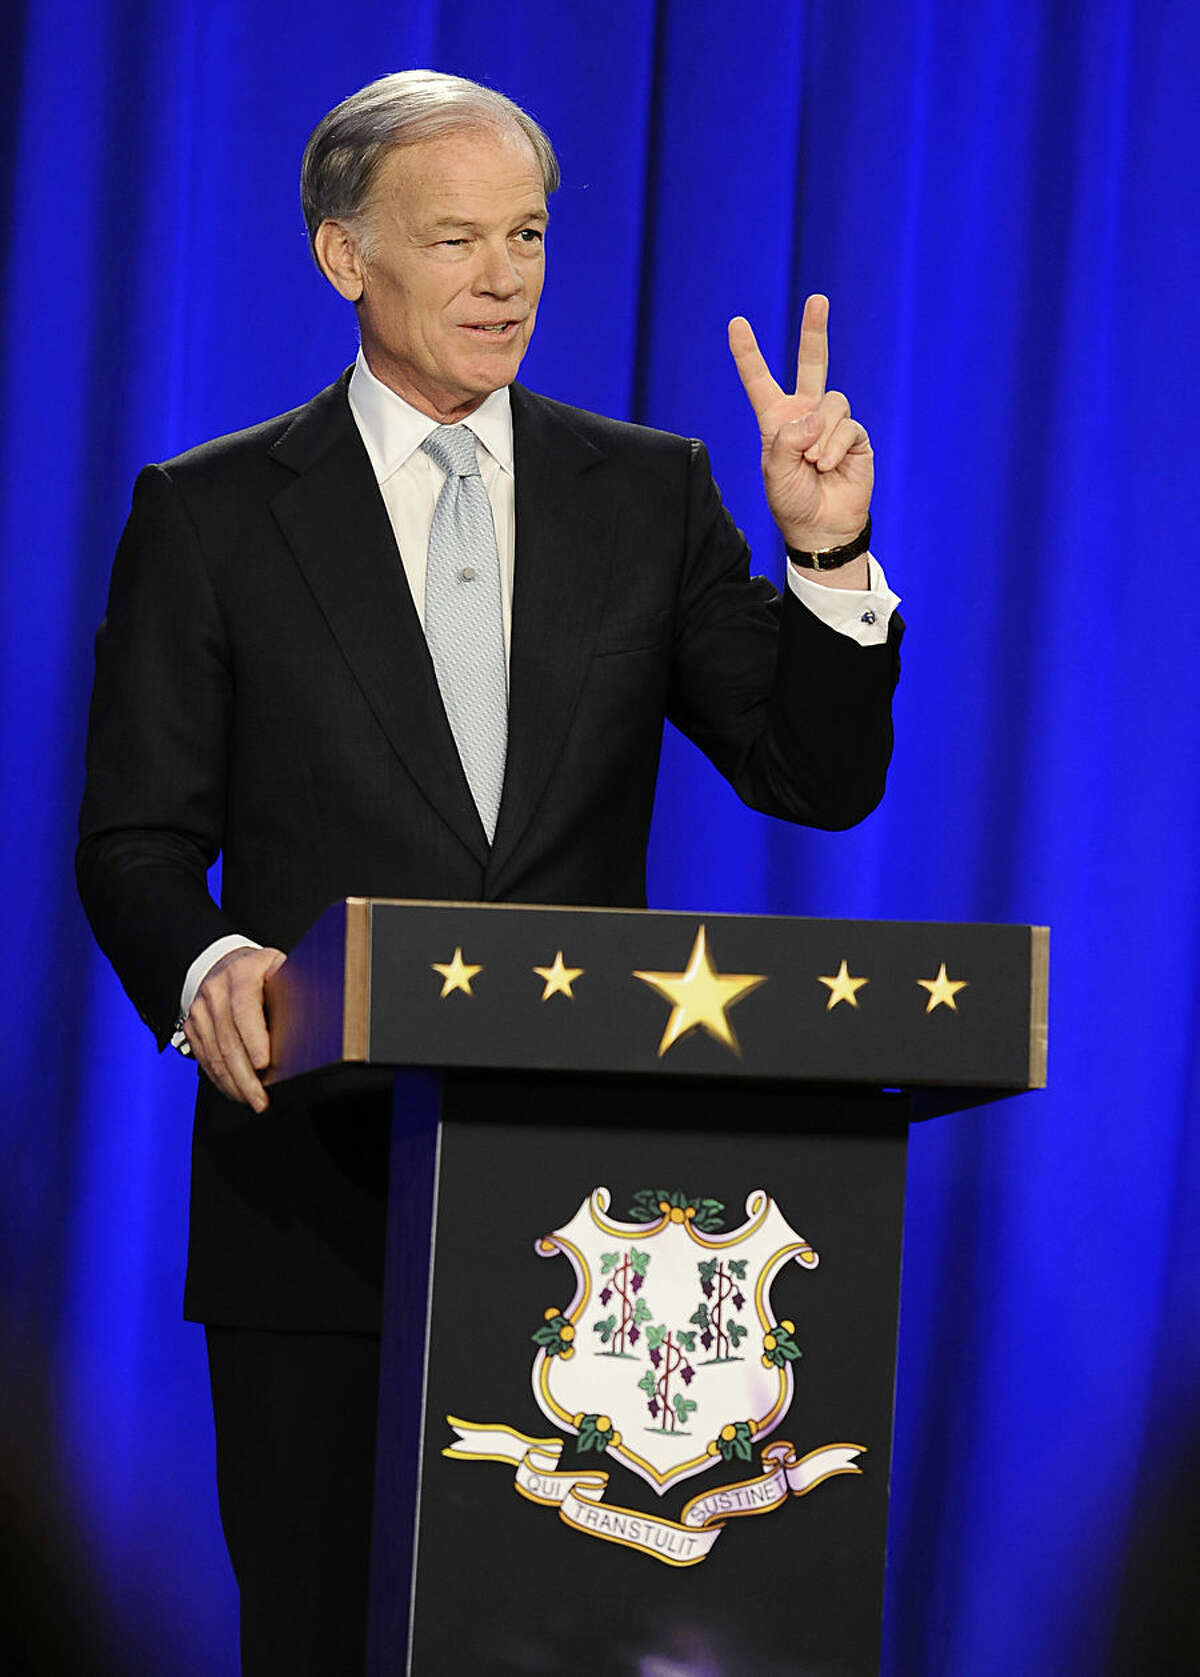 Republican candidate for governor Tom Foley, gestures as he speaks during a debate with incumbent Democrat Gov. Dannel P. Malloy, Thursday, Oct. 9, 2014, in Hartford, Conn. (AP Photo/Jessica Hill)